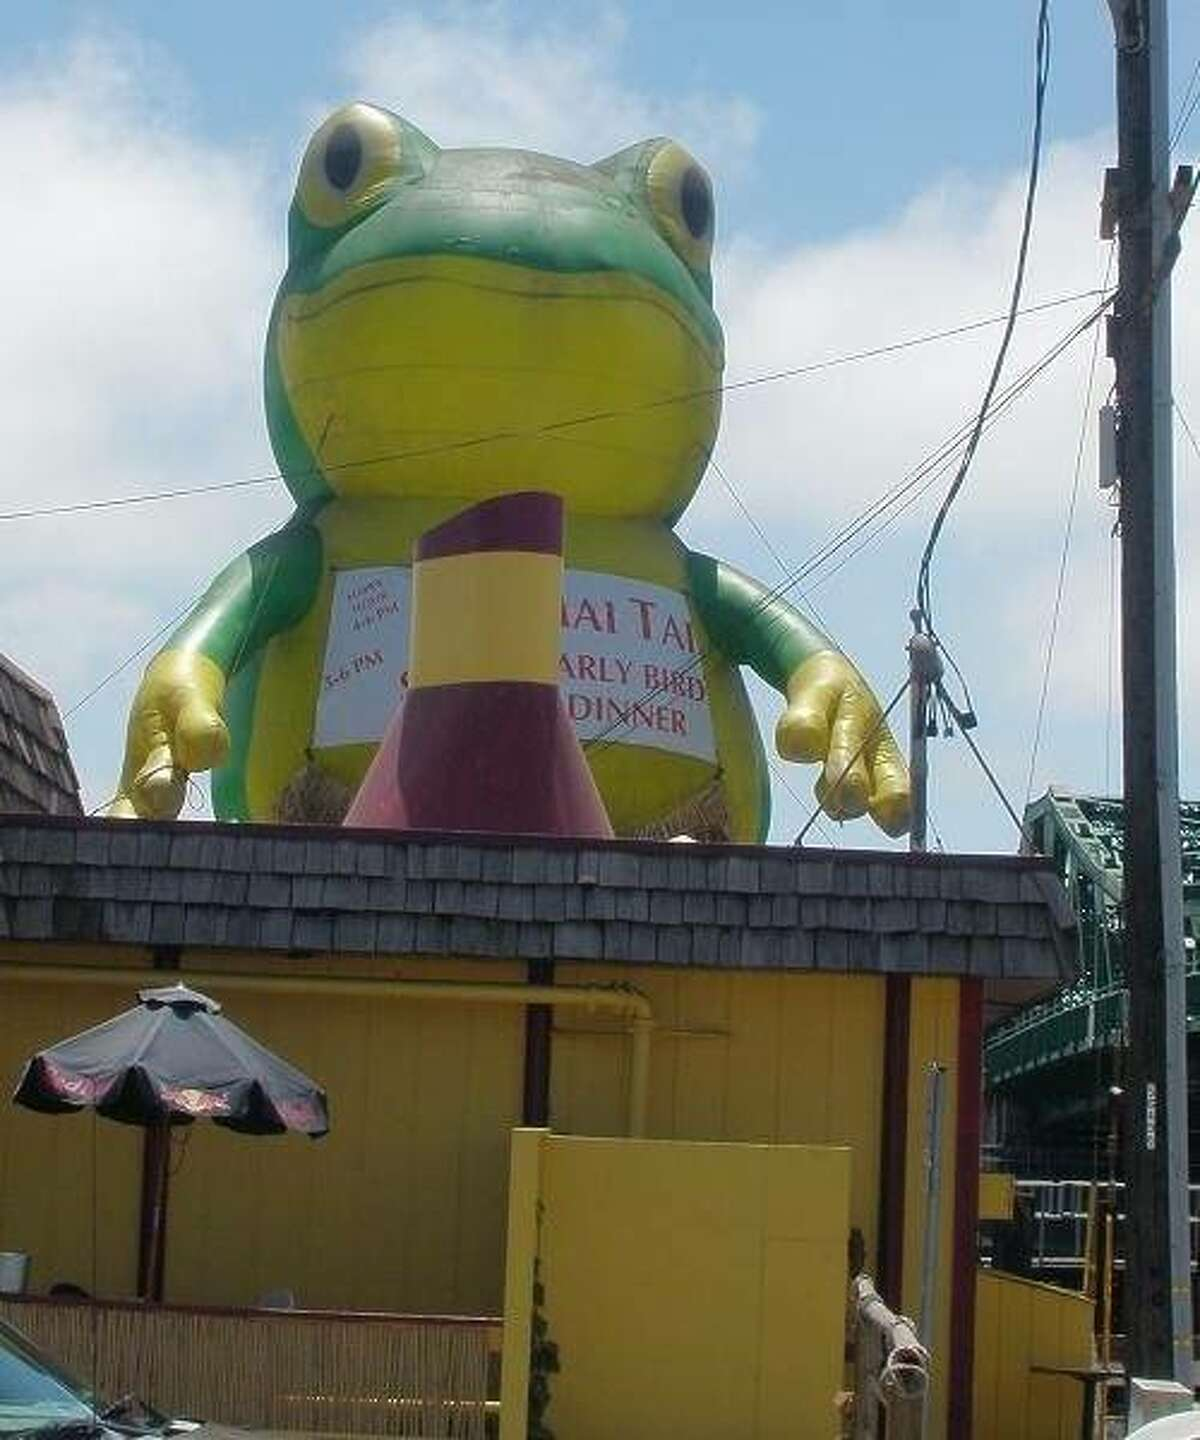 There's a giant inflatable frog outside of Tiki Tom's.